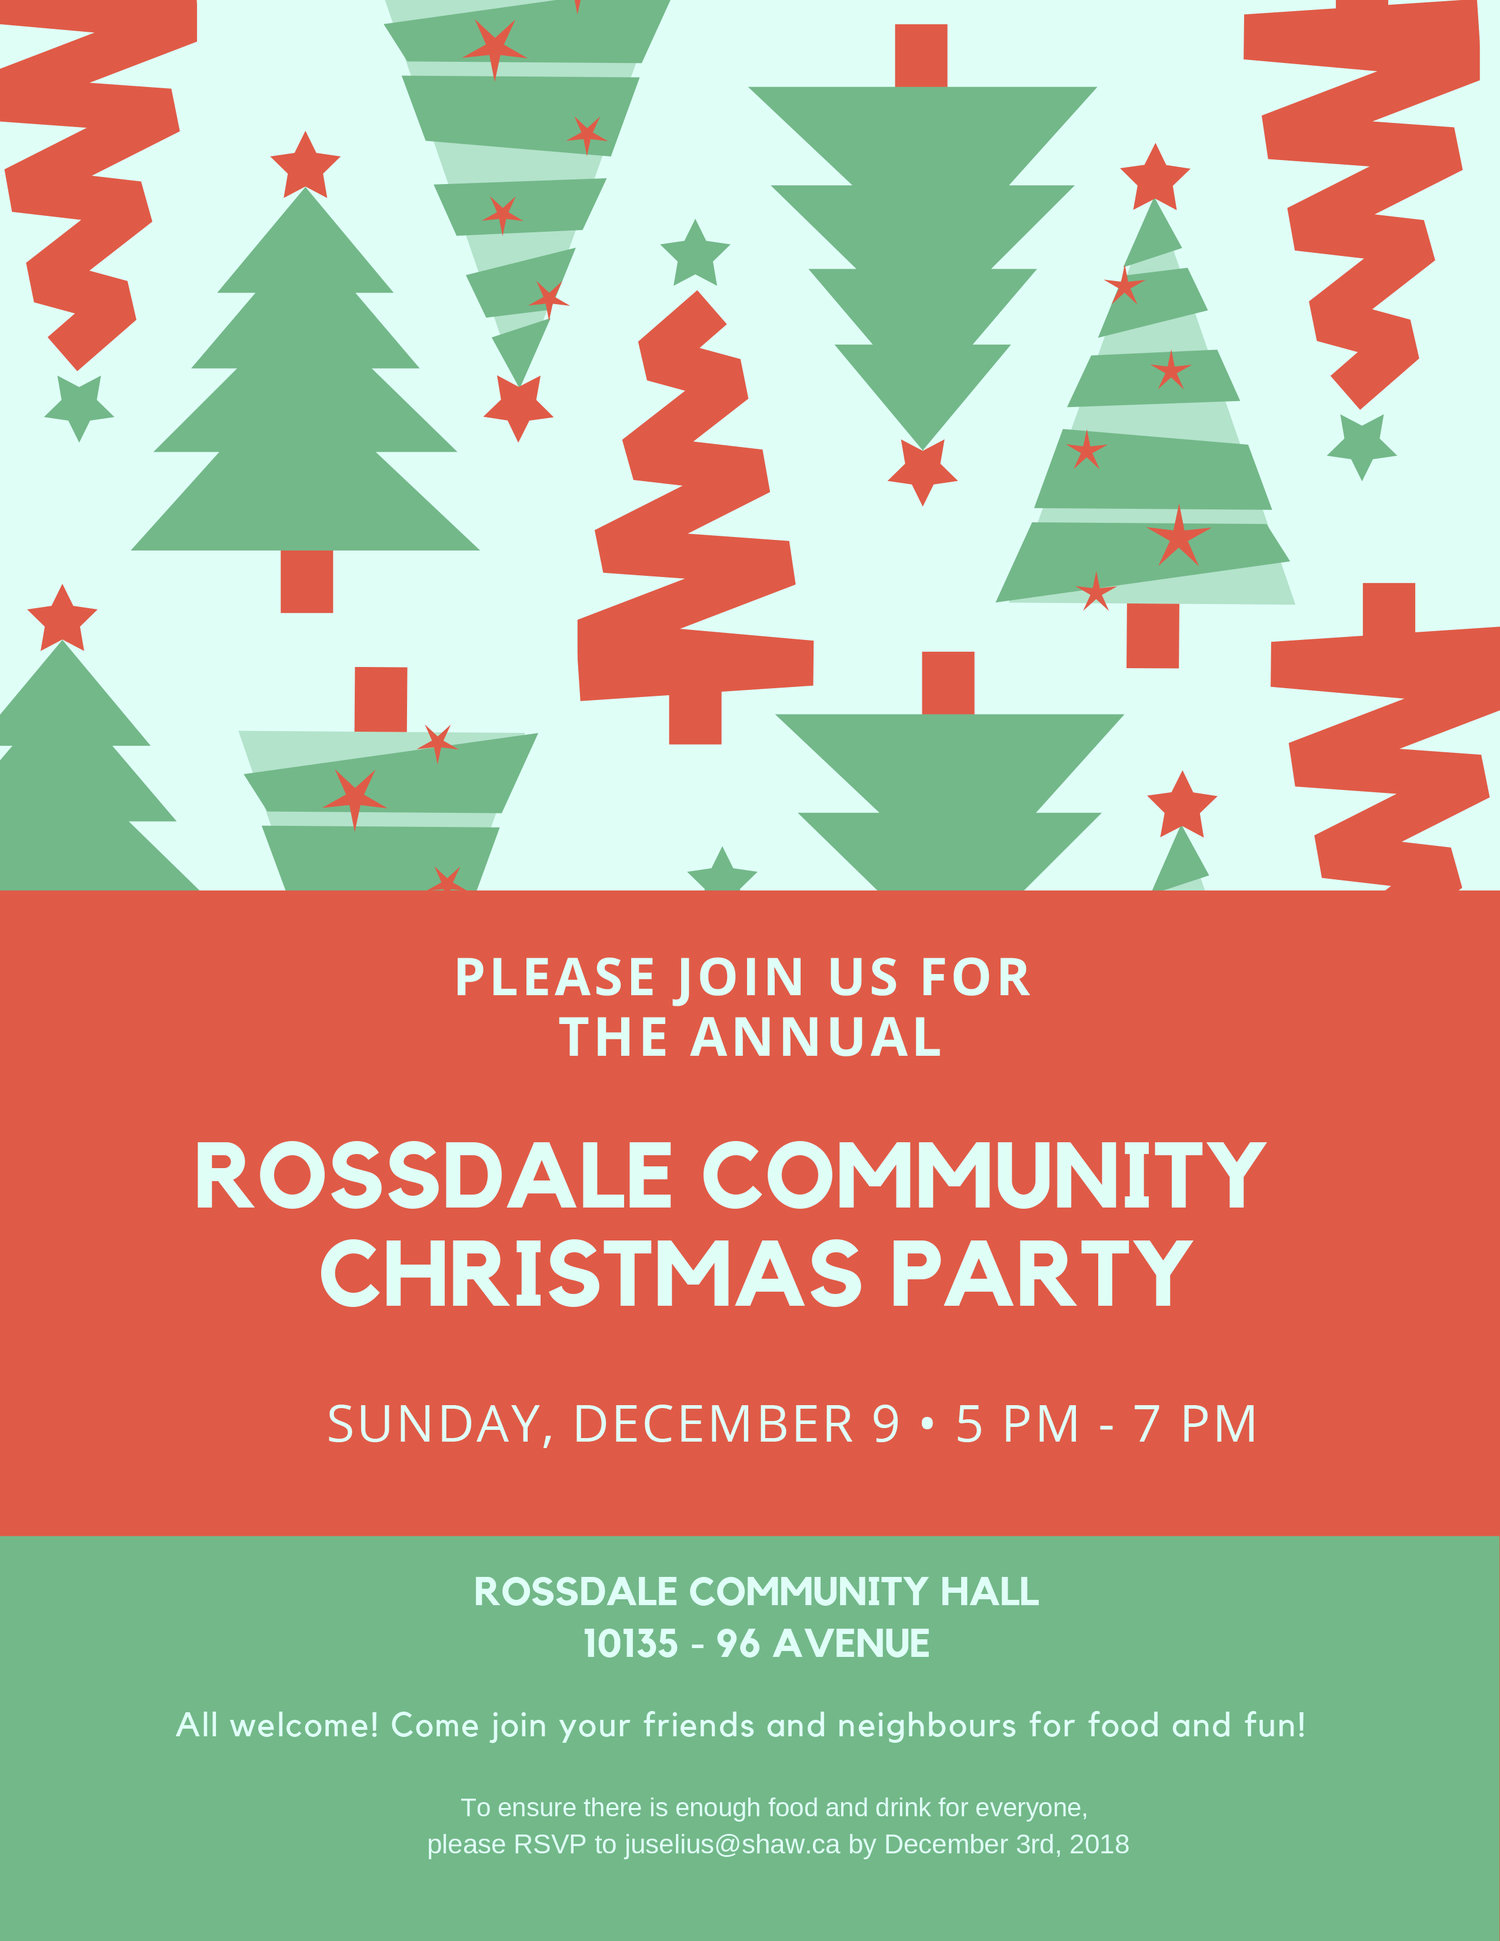 Christmas Date.Save The Date For The Annual Rossdale Christmas Party